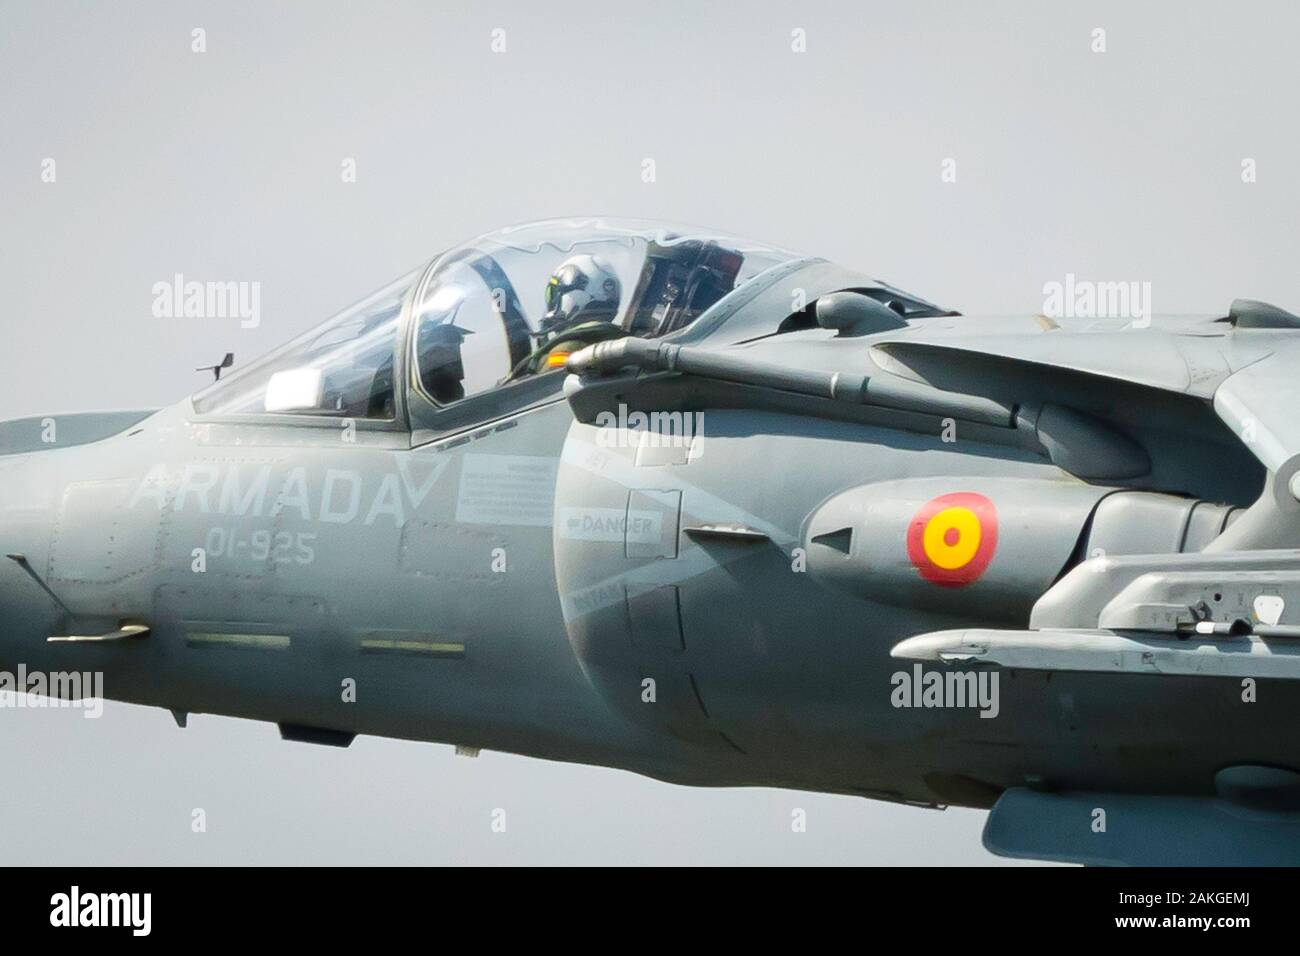 Fairford, Gloucestershire, UK - July 20th, 2019: Spanish Navy EAV-8B Harrier II Displays at the Fairford International Air Tattoo 2019 Stock Photo